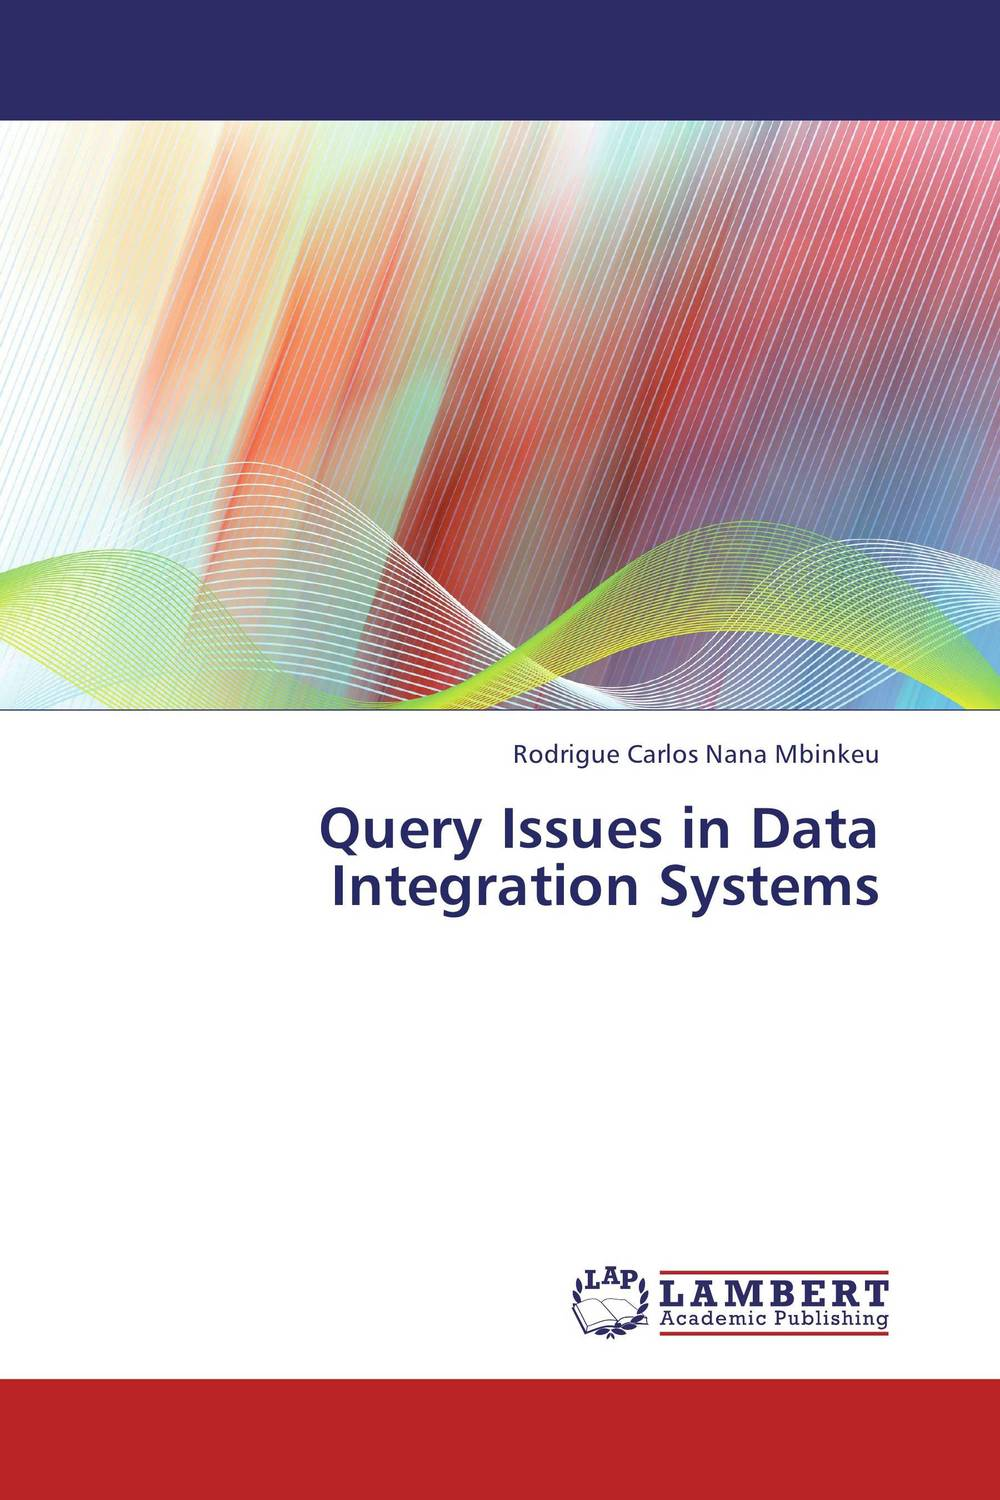 Query Issues in Data Integration Systems robert hillard information driven business how to manage data and information for maximum advantage